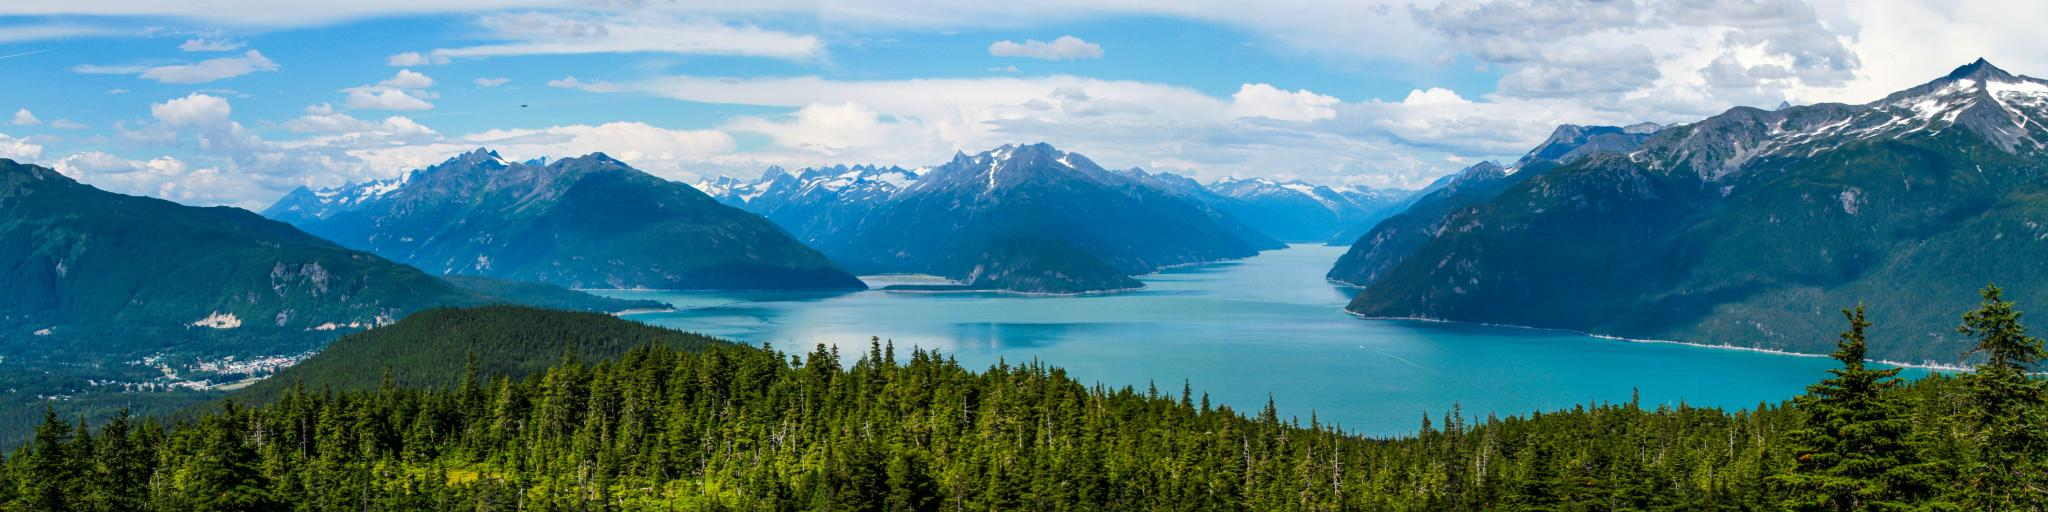 Haines, Alaska surrounded by snow-capped mountains and ocean inlets on a summer day.